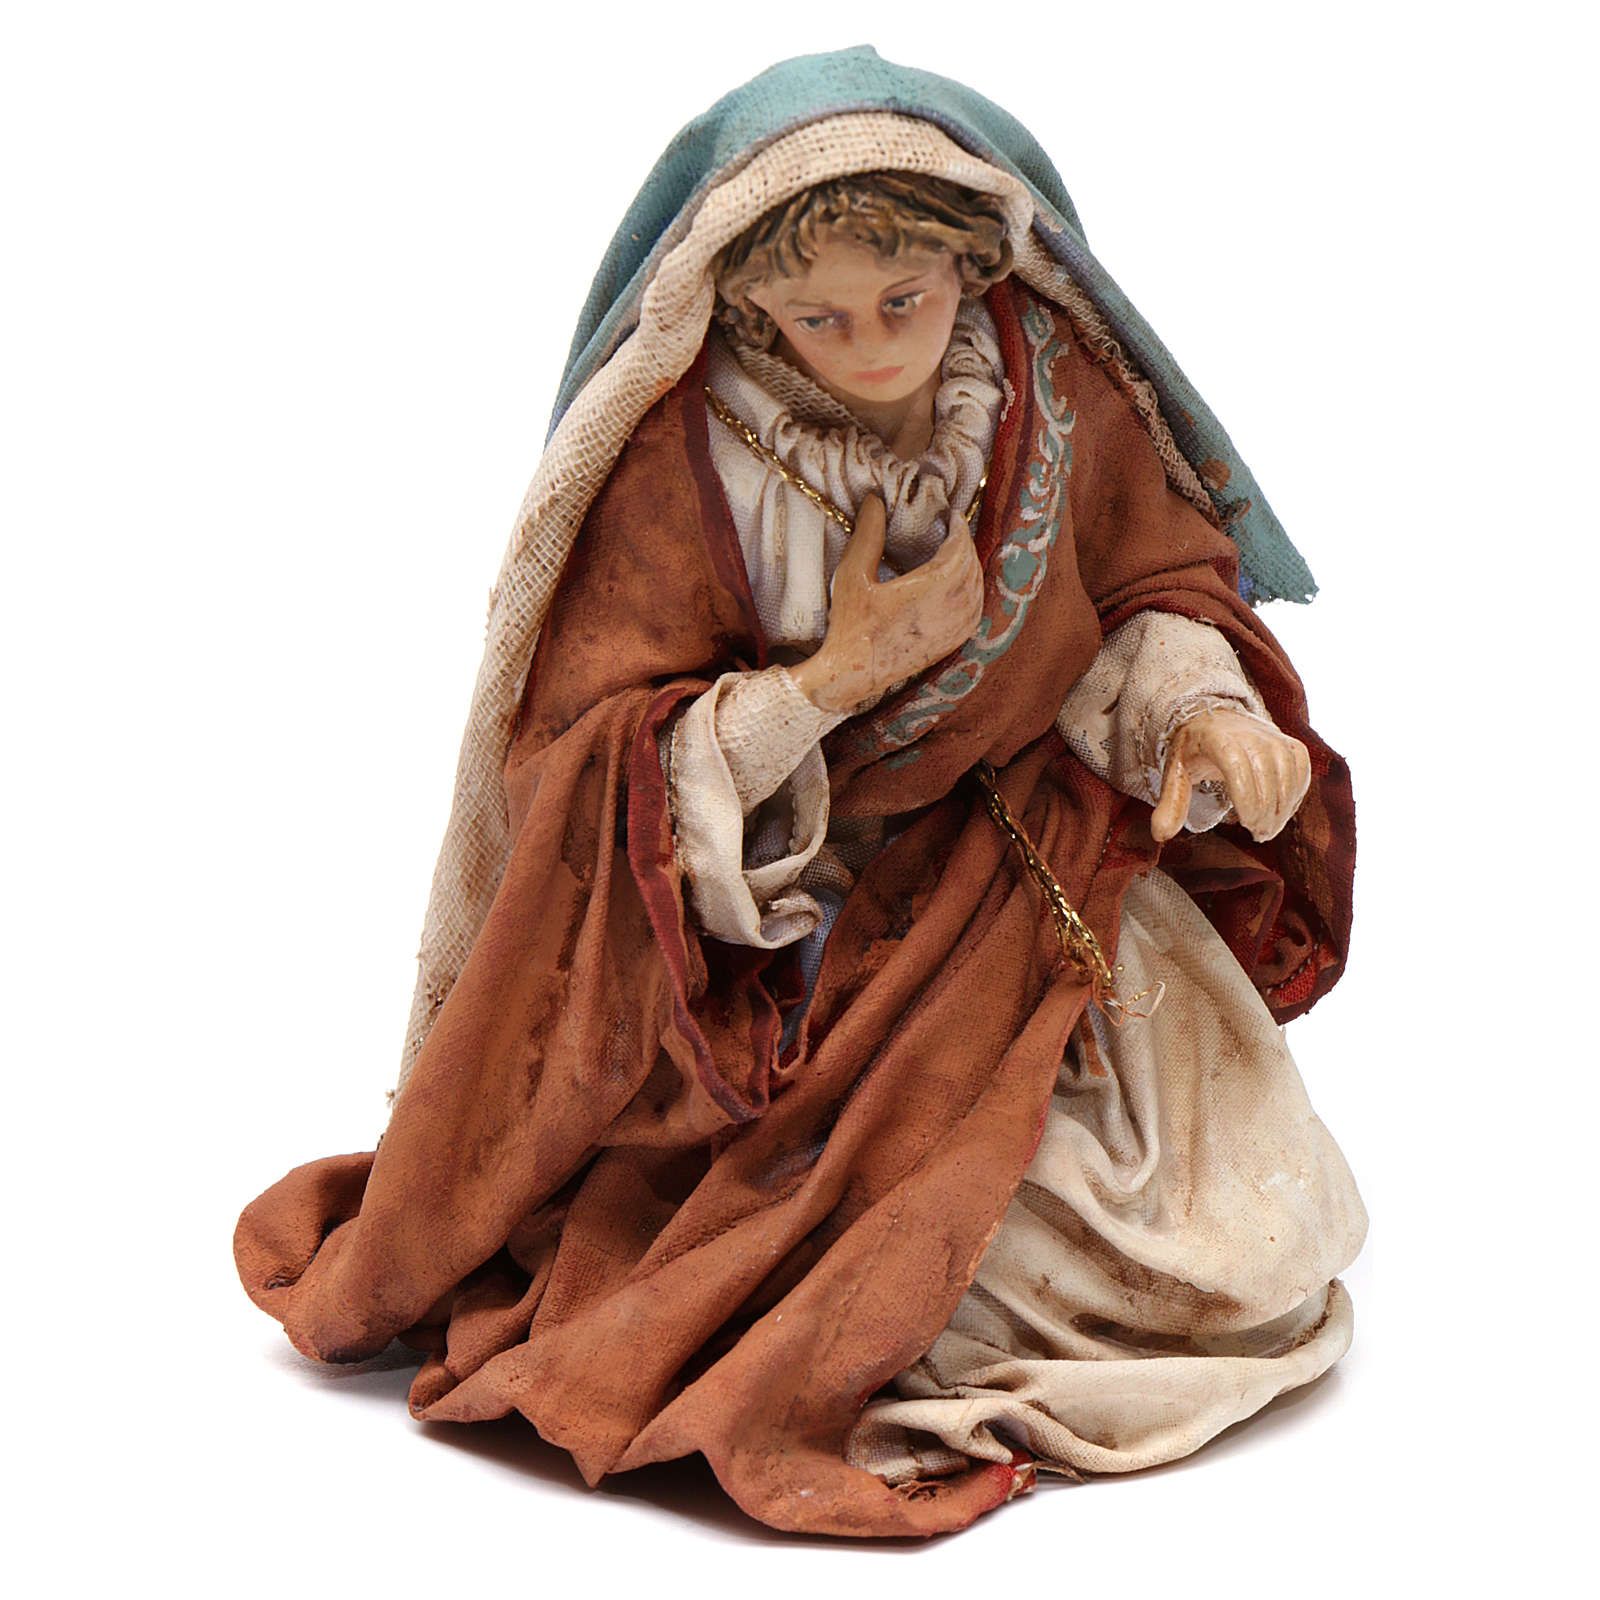 Natività 13 cm in Terracotta 3 pz Angela Tripi 4